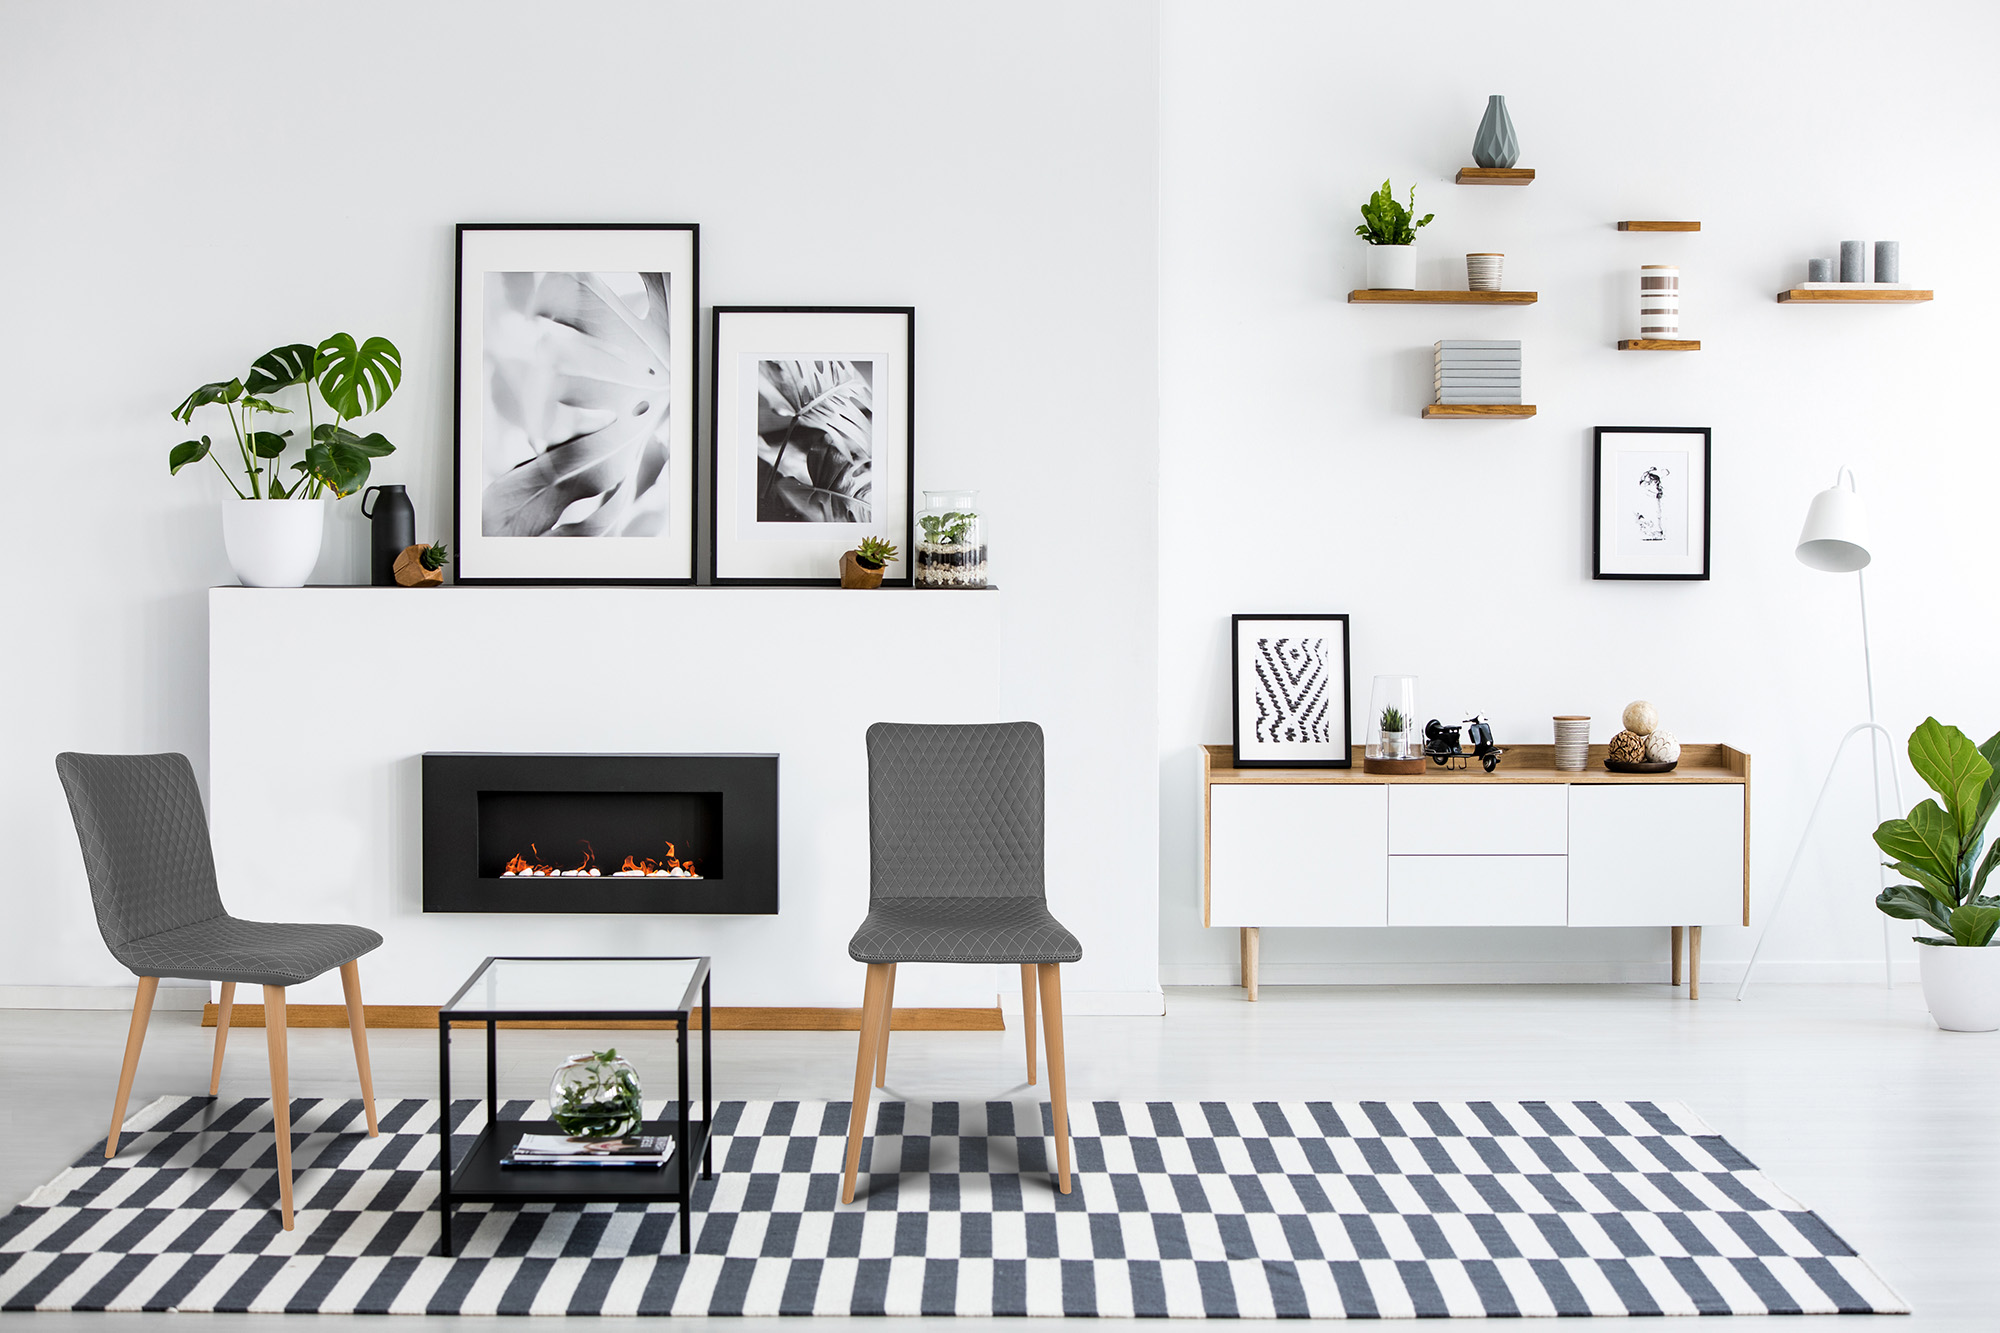 Fireplace between grey armchairs in modern living room interior with posters and plants. Real photo